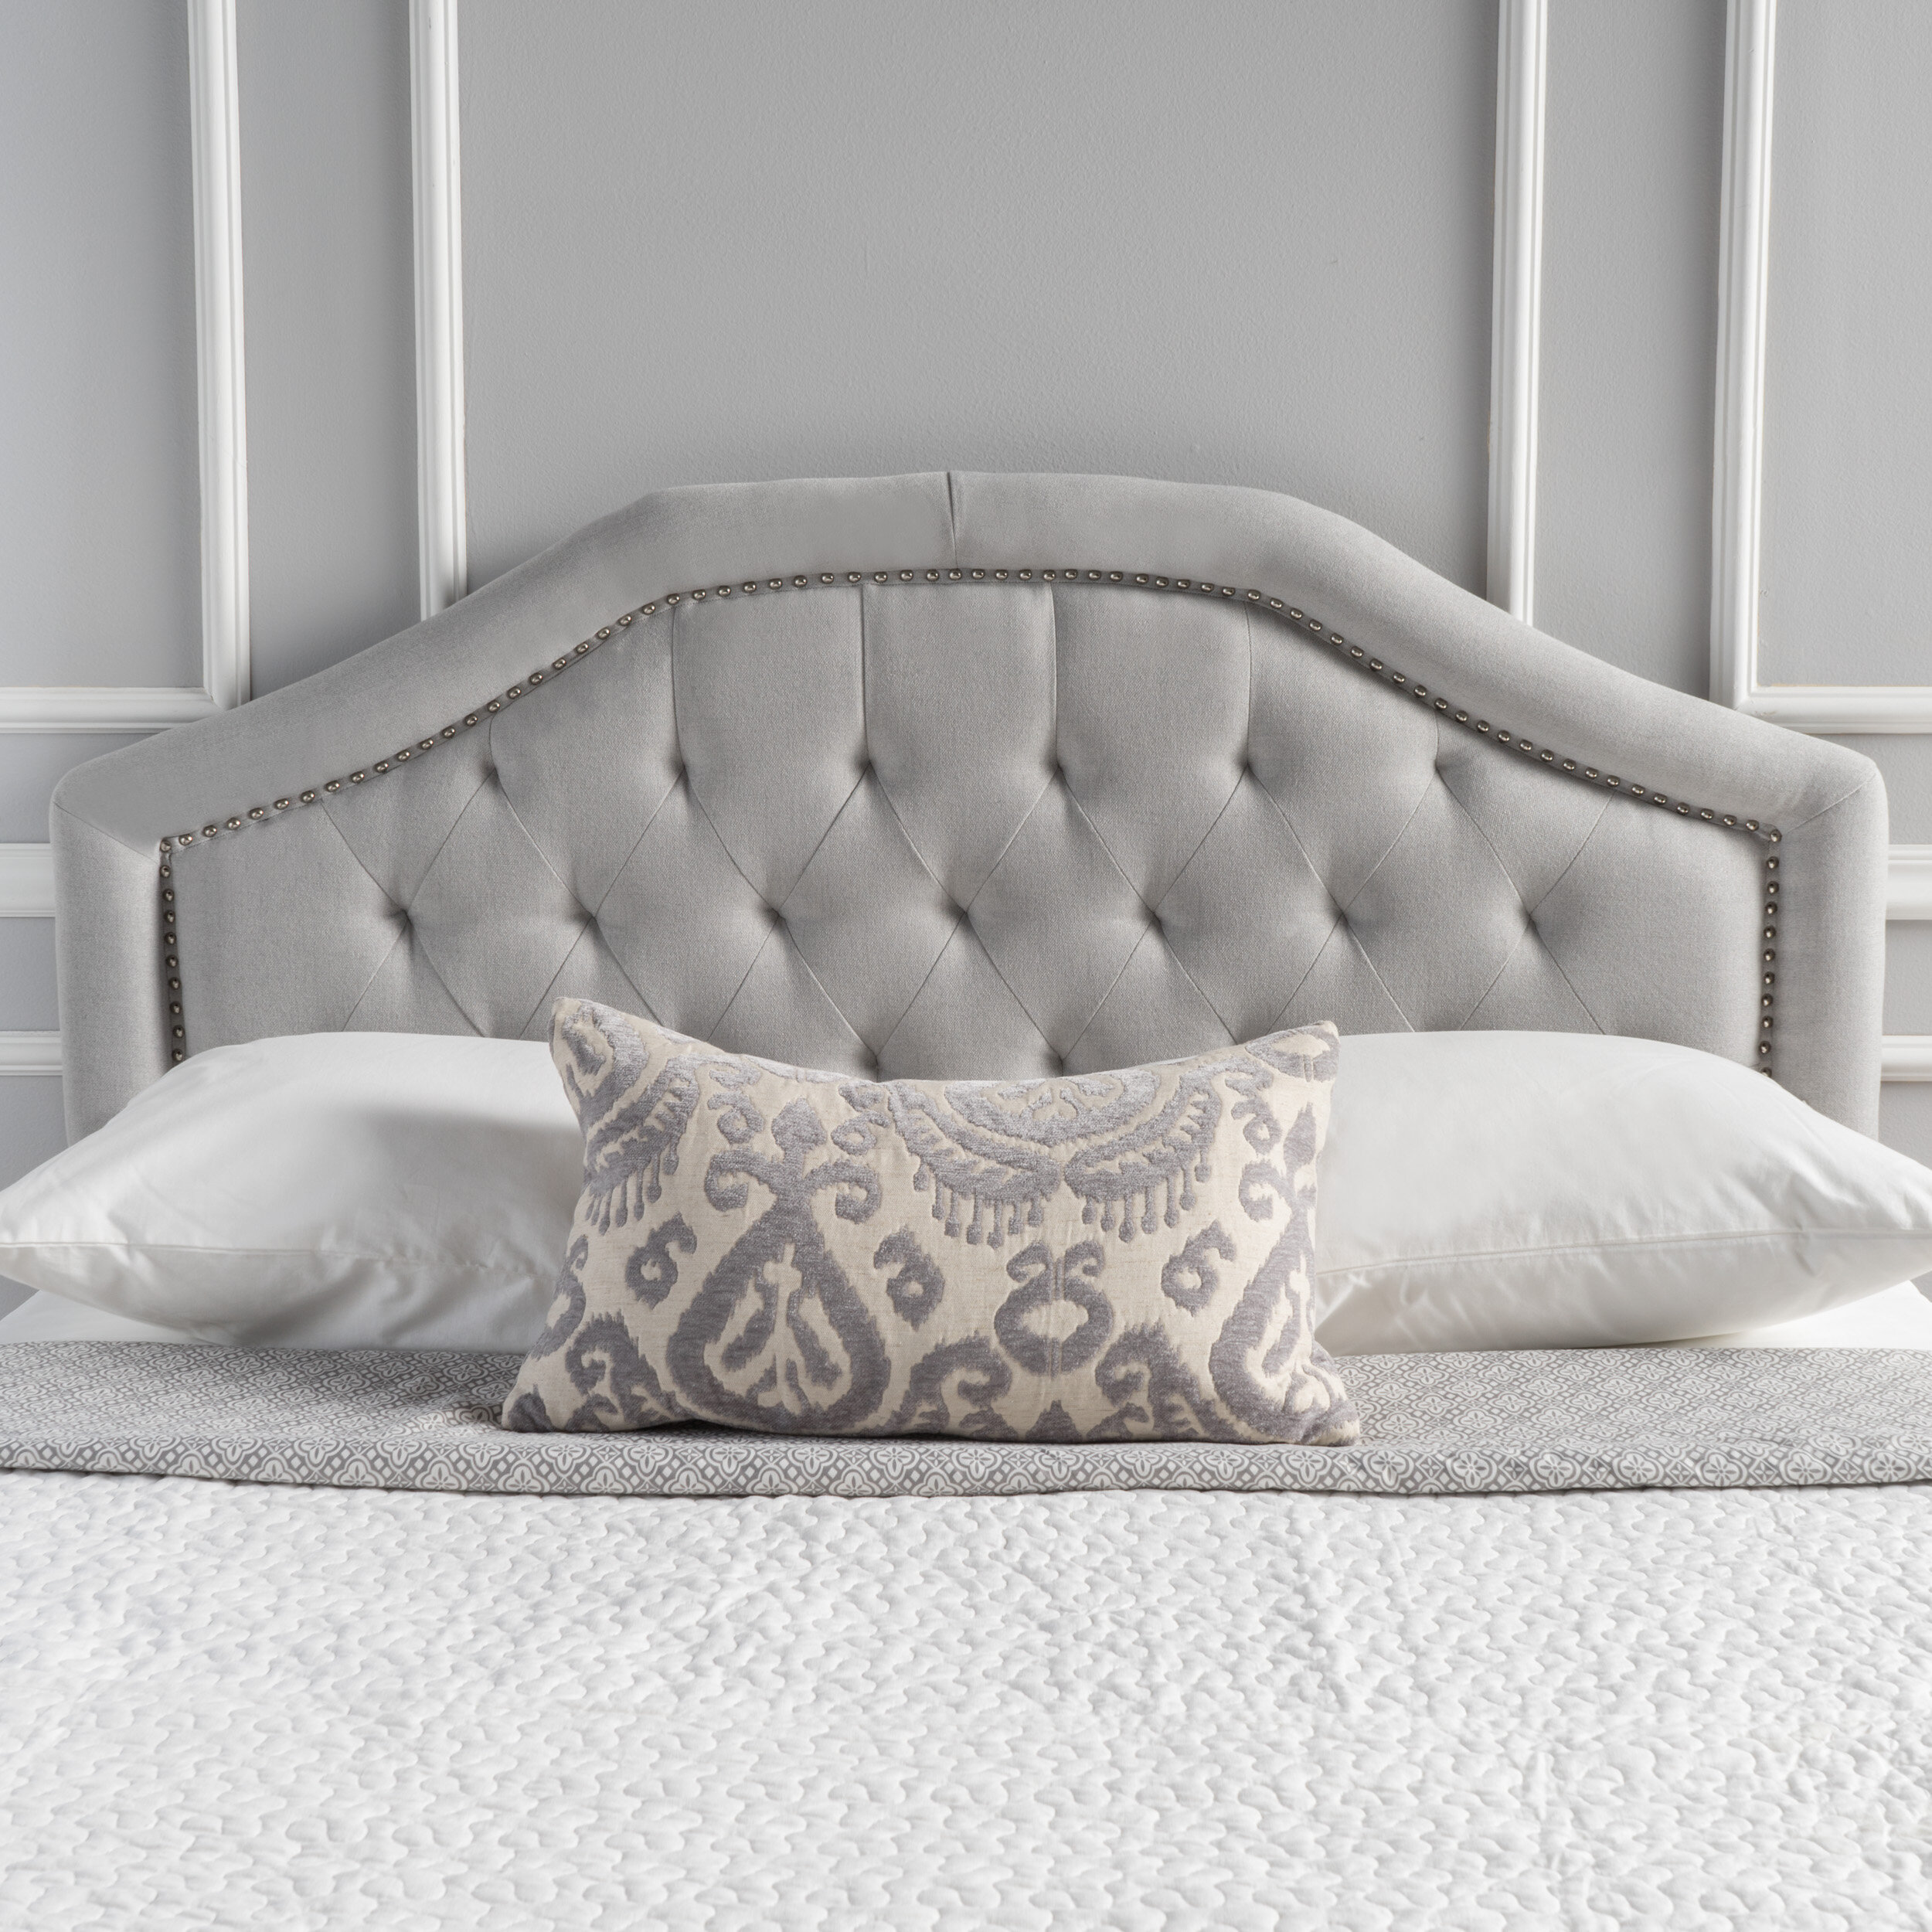 huggers lauramstein laura designer bedroom staine headboard project customer wall panels m headboards upholstered